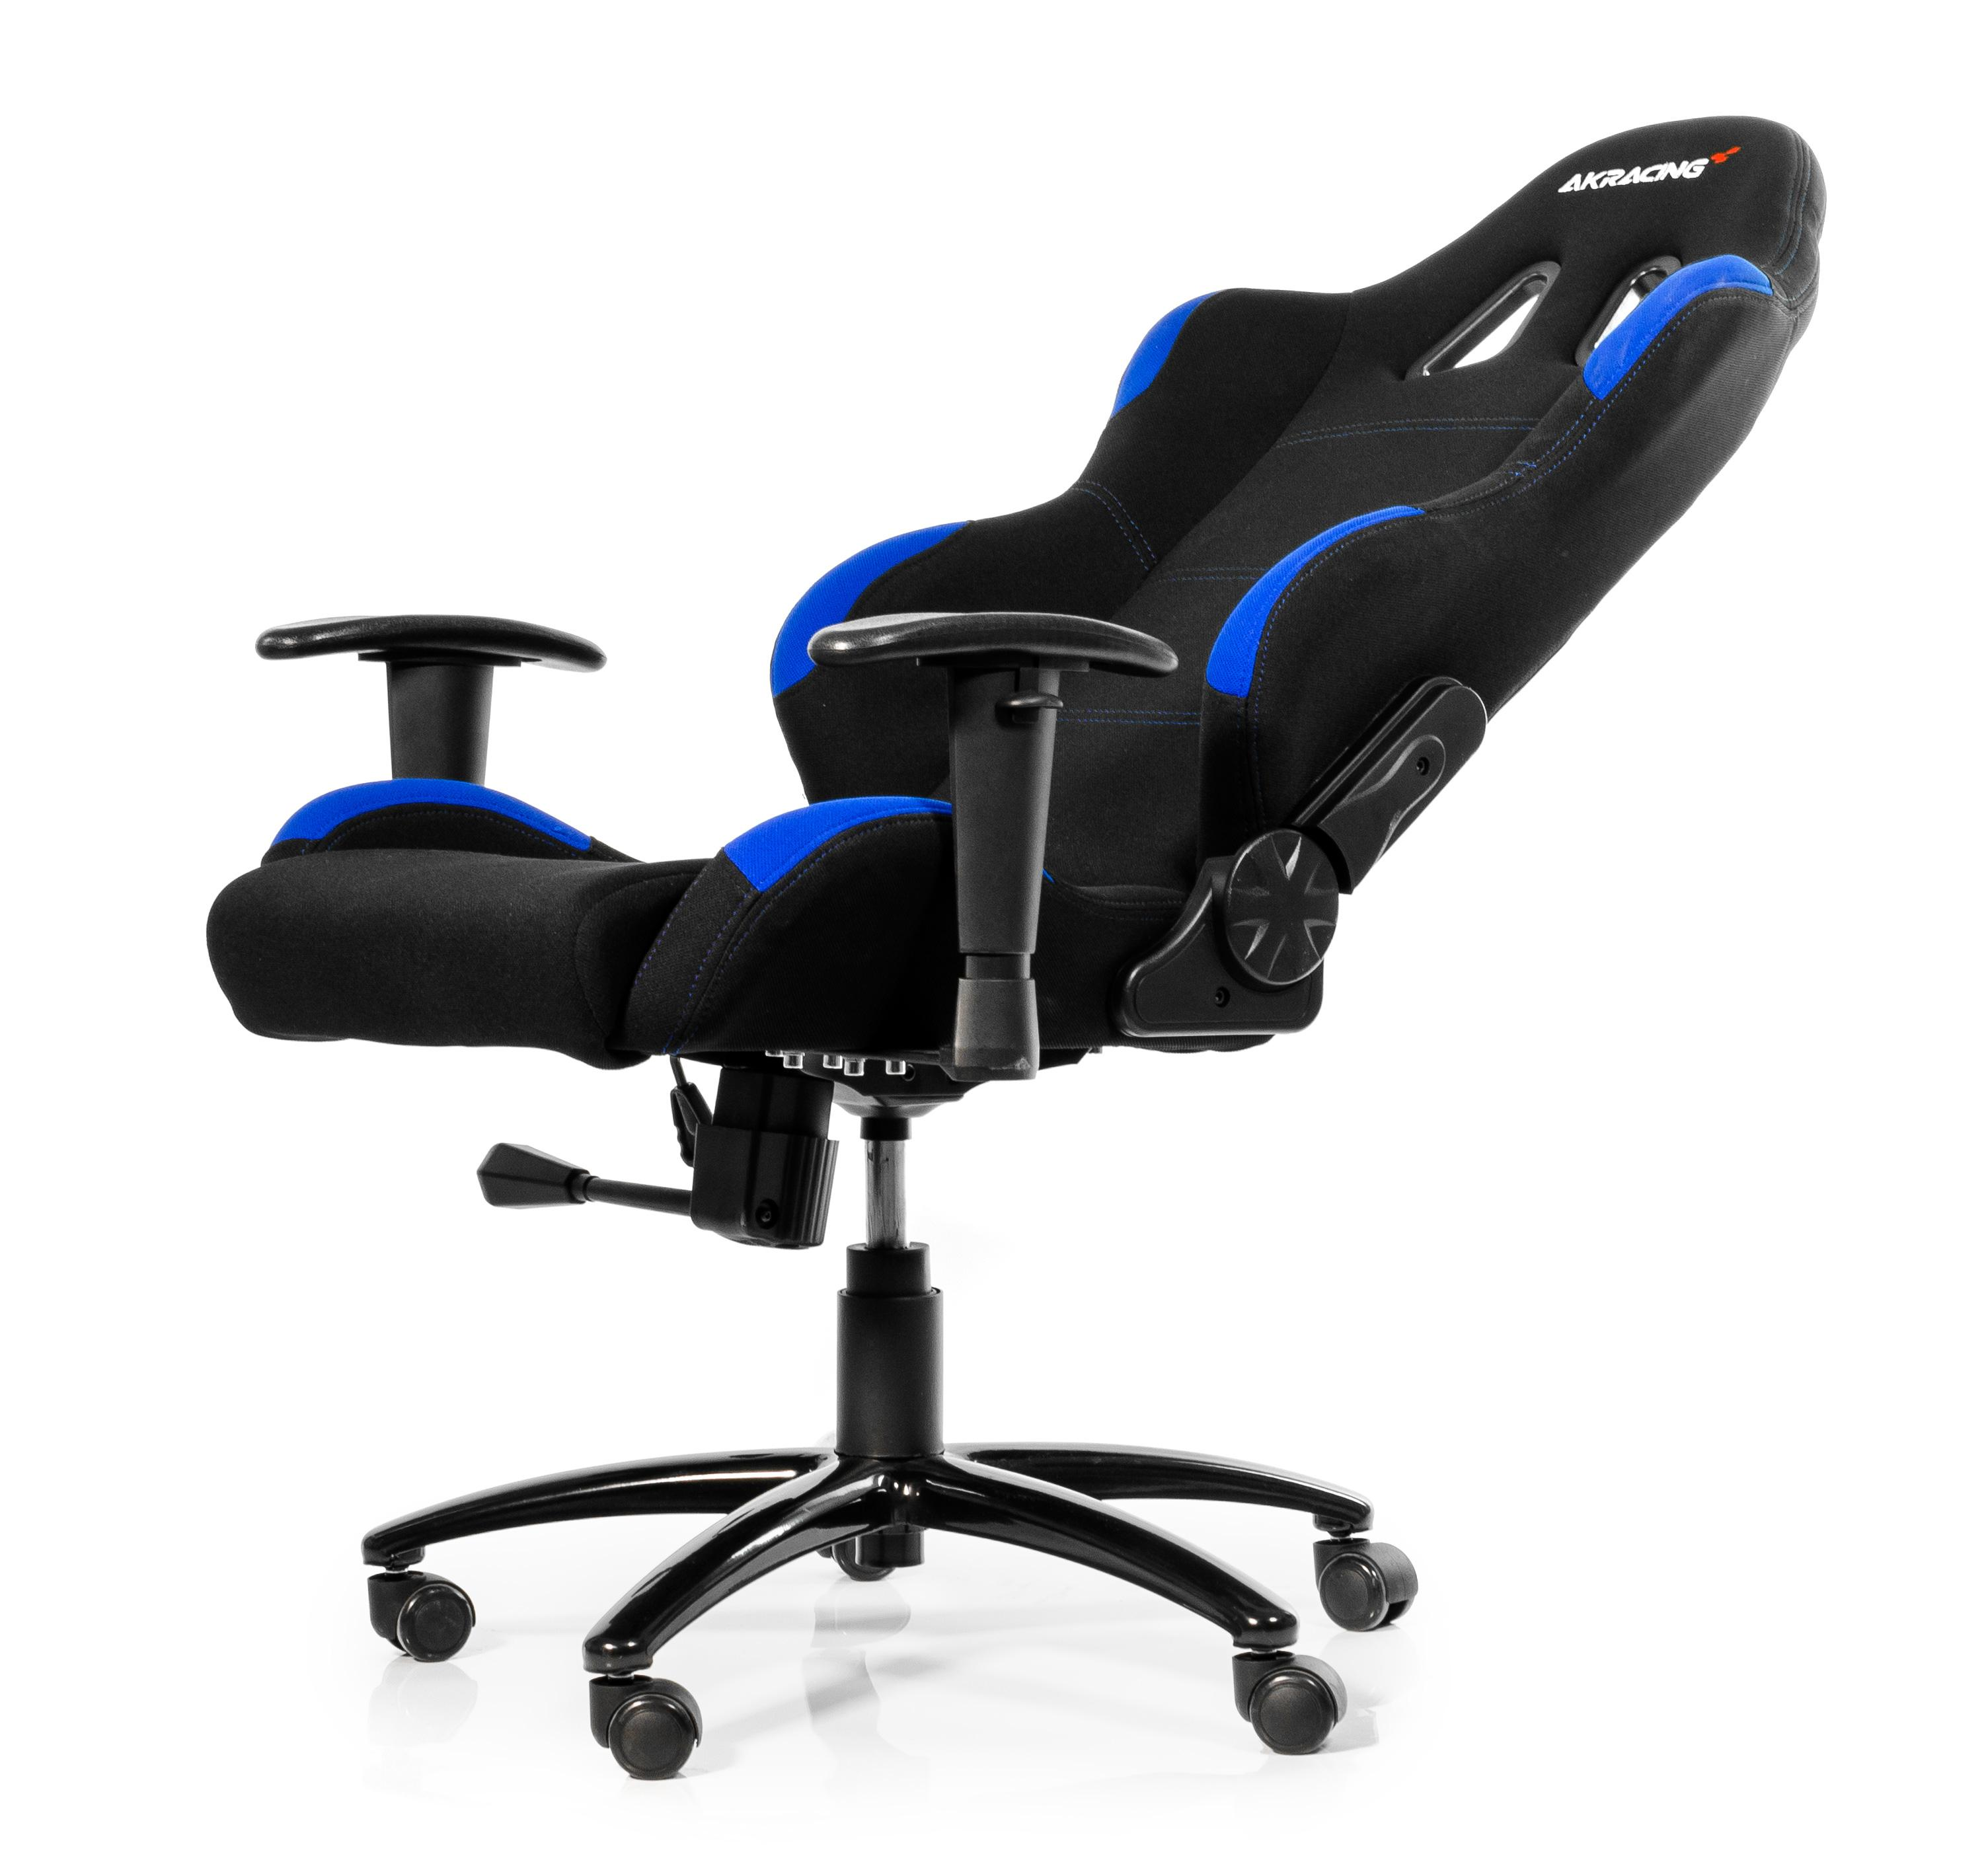 Fauteille Gamer Akracing Stoel Gaming Chair Black Blue